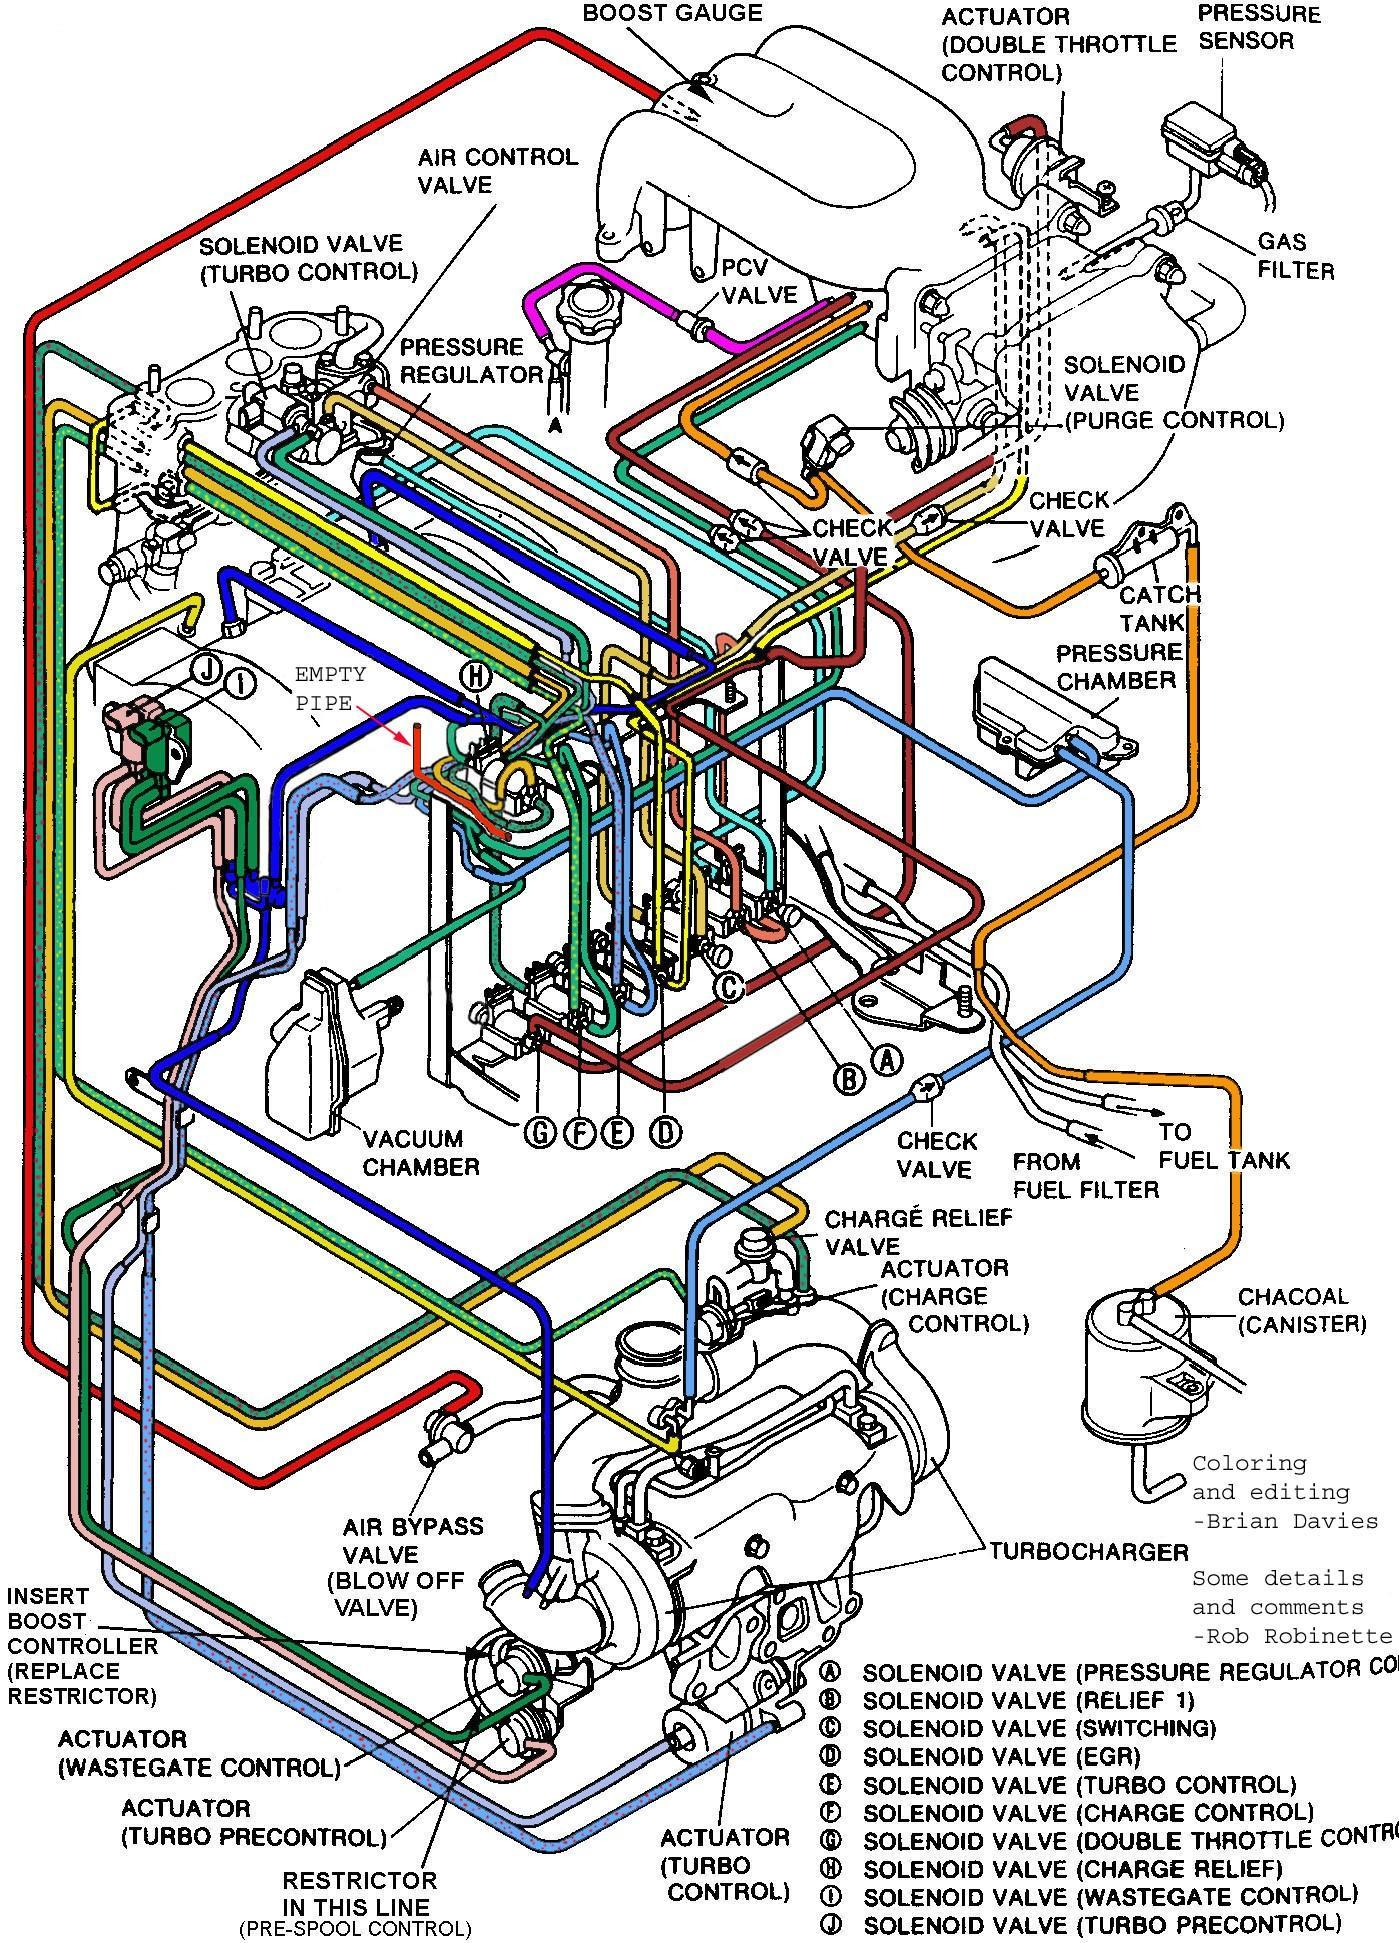 1989 Jeep Wrangler Vacuum Schematic Wiring Library. Jeep 2 4 Vacuum Lines Diagram Smart Wiring Diagrams U2022 Rh Krakencraft Co 1989 Wrangler. Jeep. Jeep Vacuum Diagrams 1985 At Scoala.co